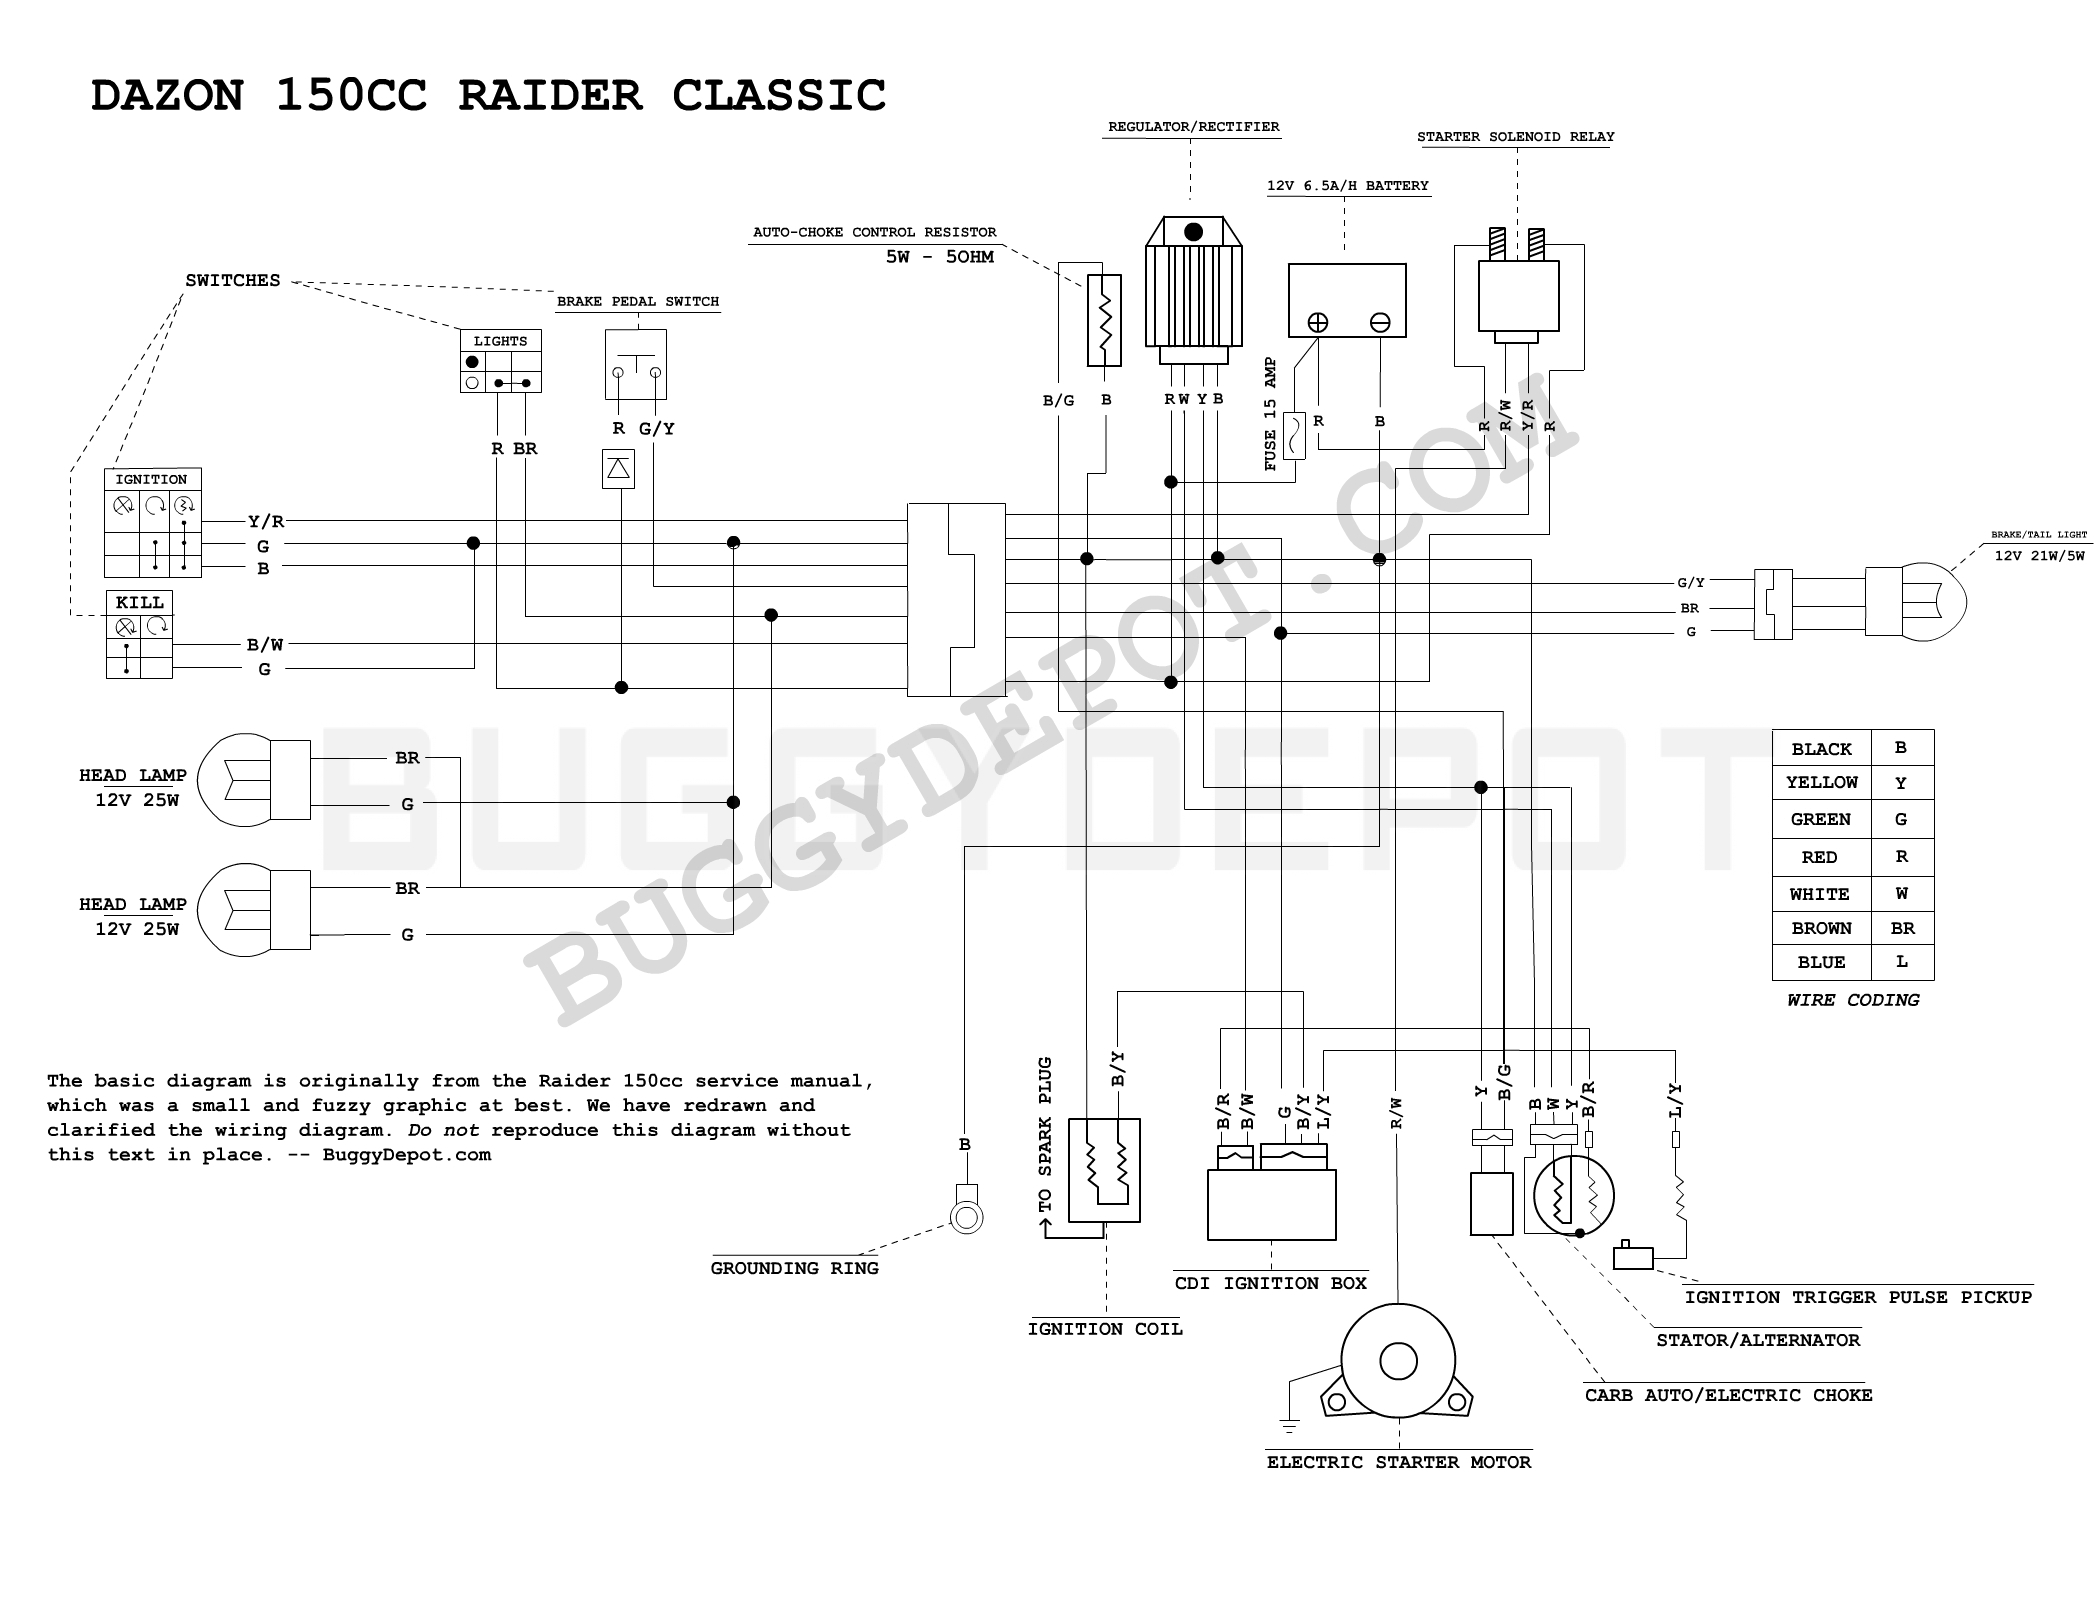 Yerf Dog 150cc Wiring Diagram (Go-Kart) · Dazon Raider Classic – Wiring  Diagram